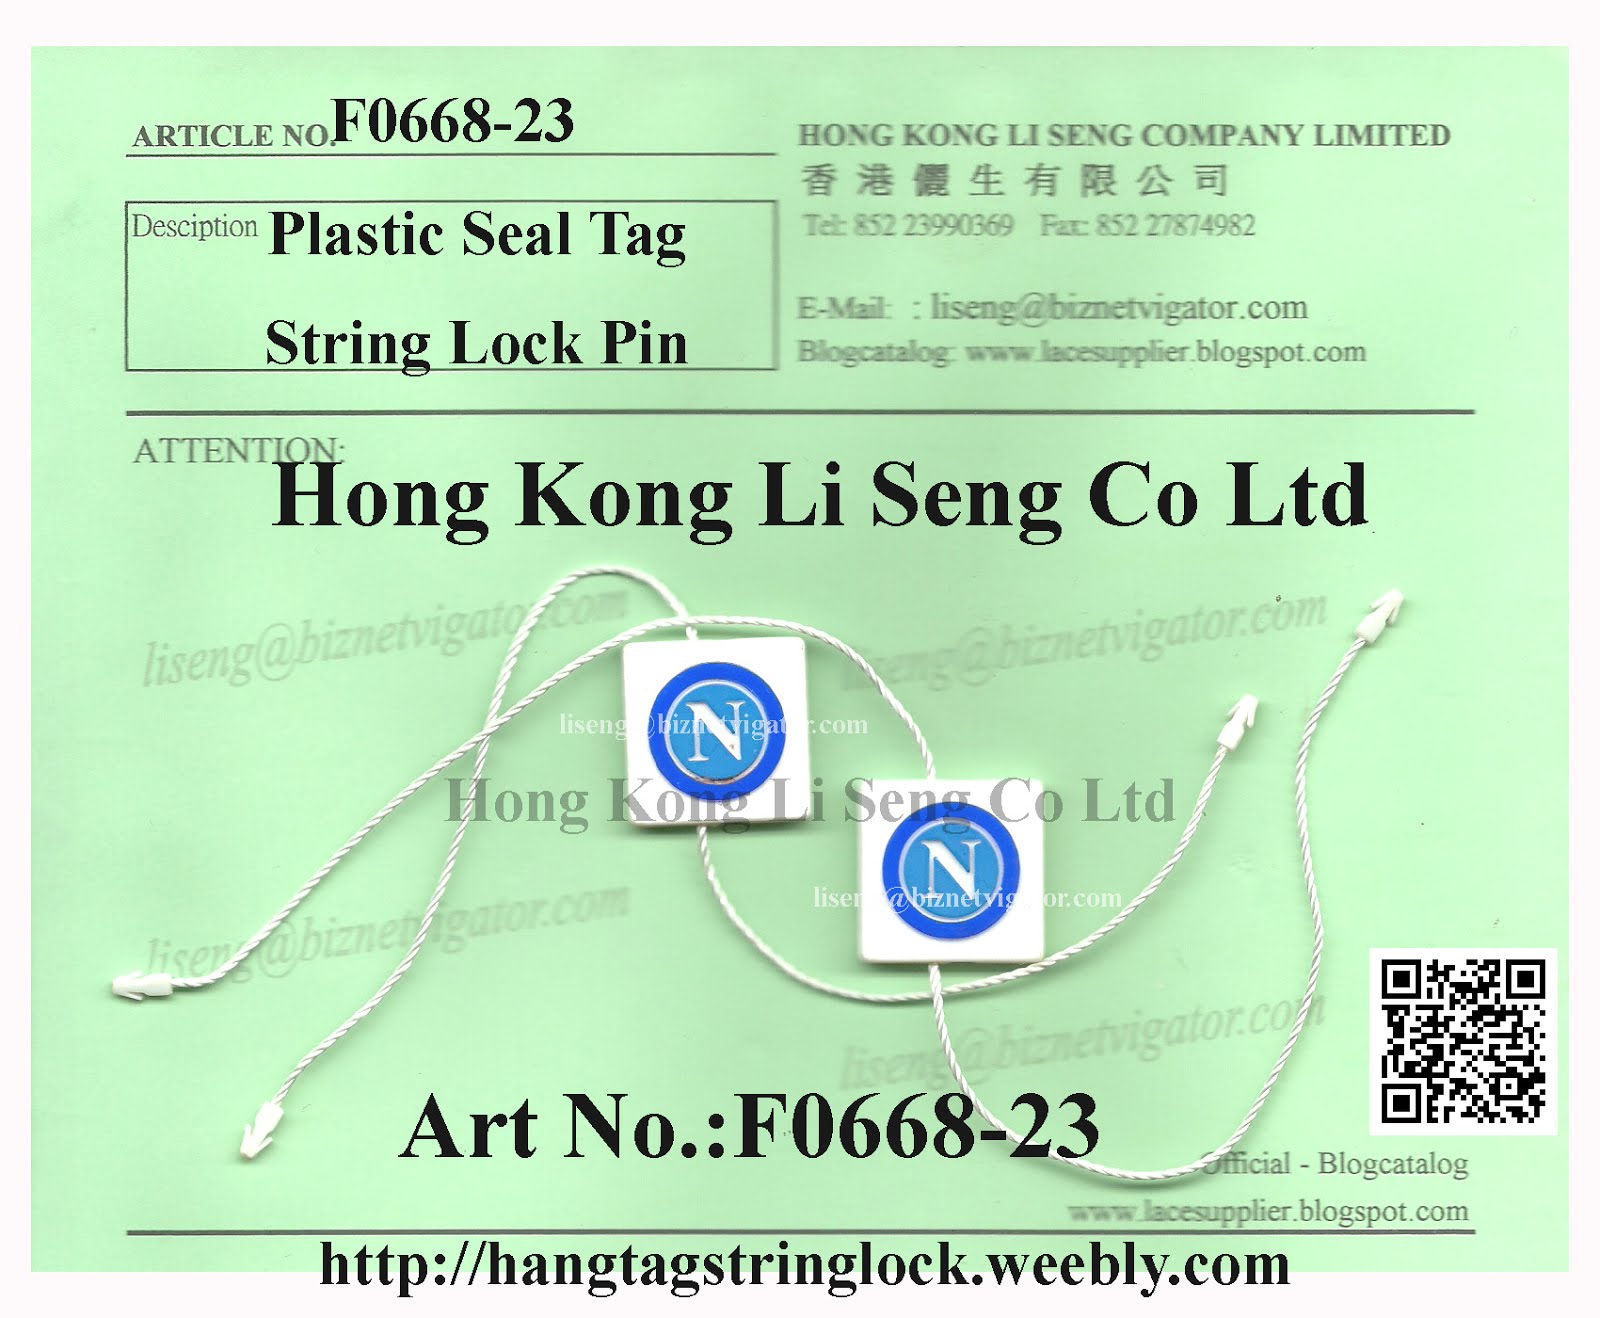 Daily News Plastic Seal Tag String Lock Pin